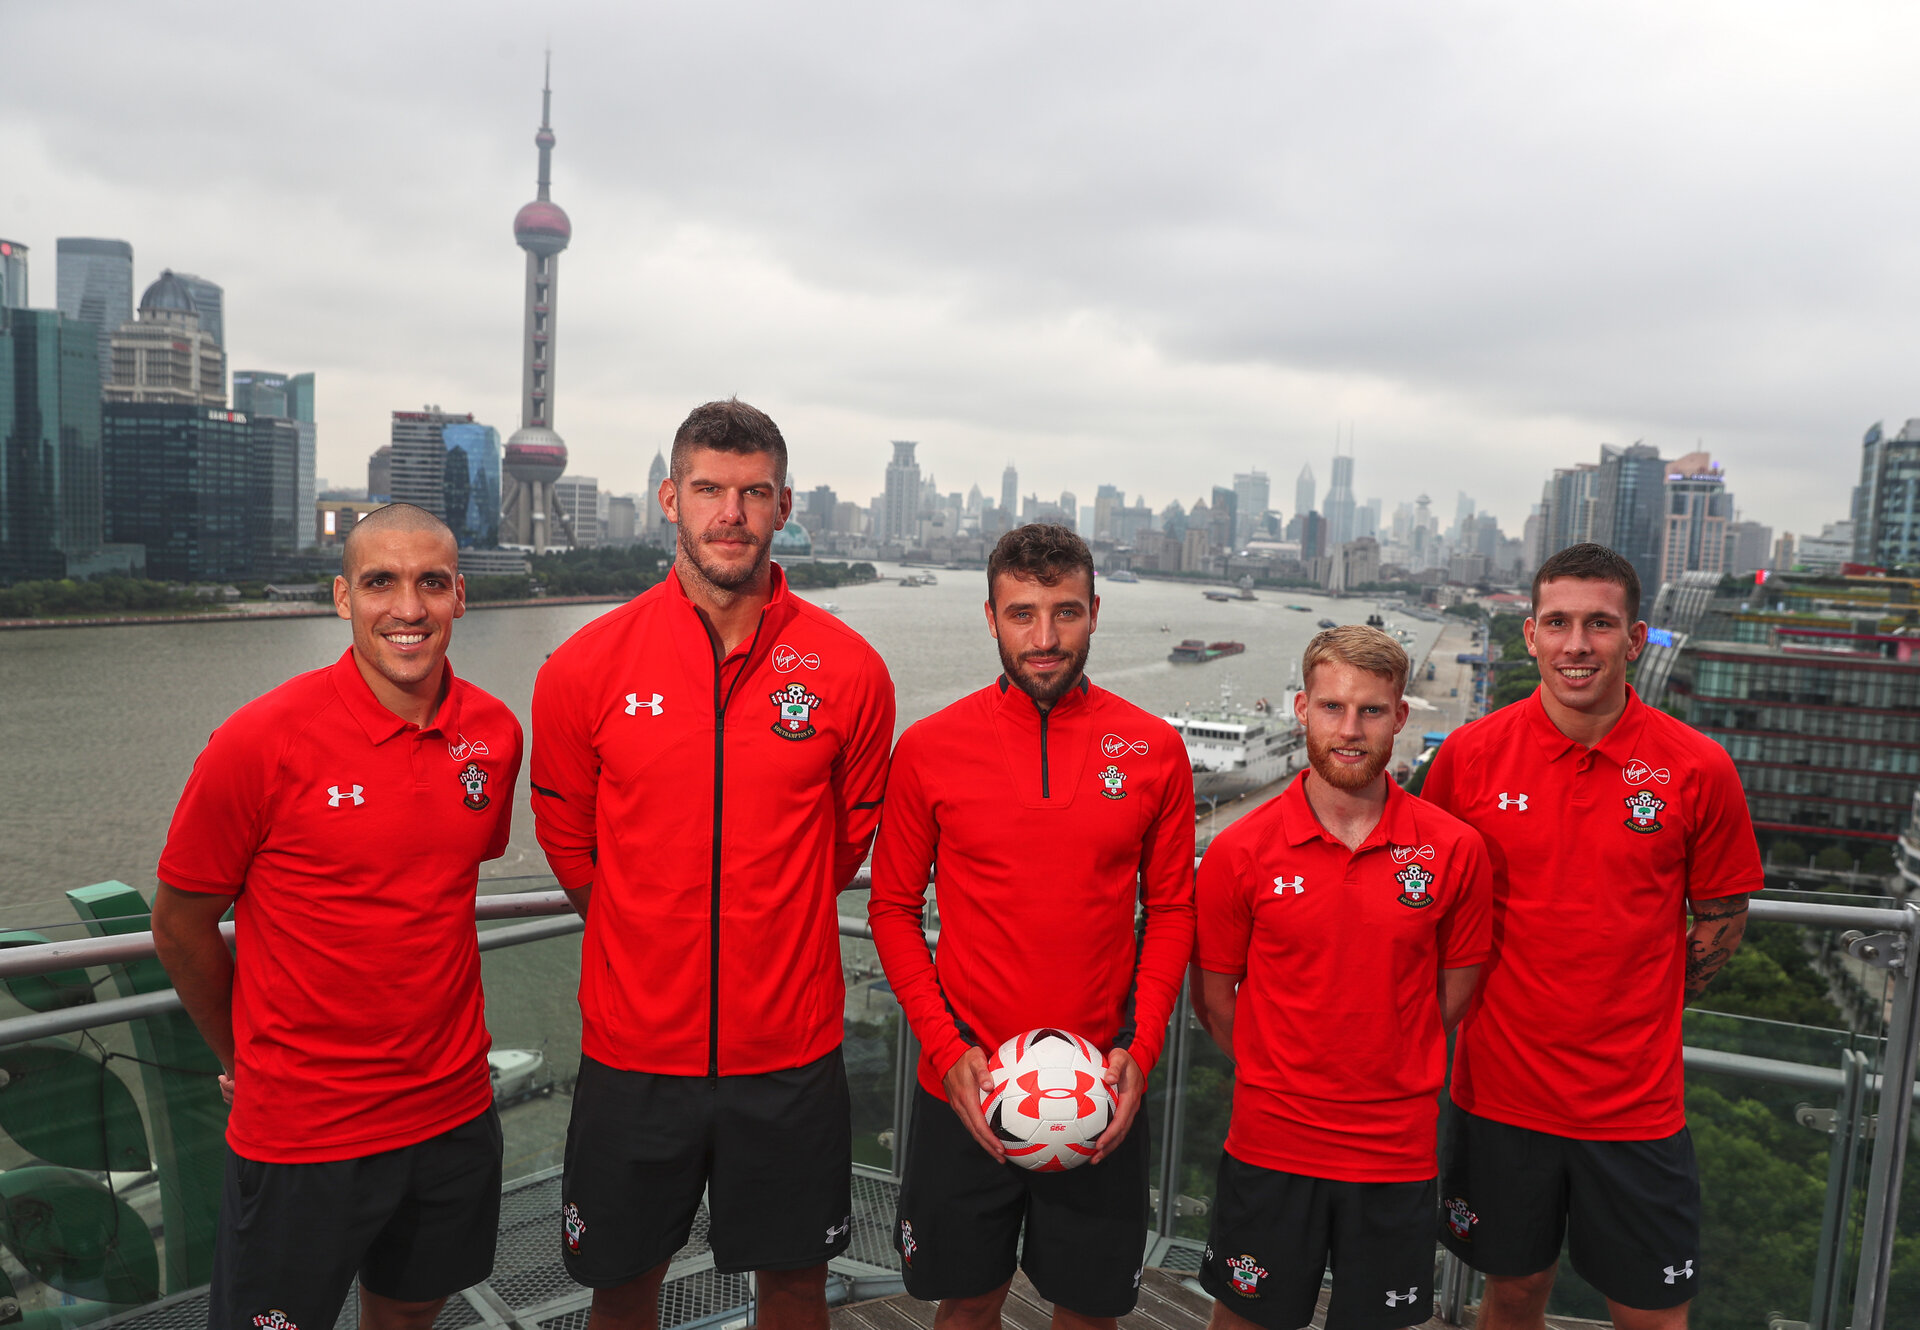 SHANGHAI, CHINA - JULY 06: L to R, Oriol Romeu, Fraser Forster, Sam McQueen, Josh Sims and Pierre-Emile Hojbjerg pictured on a rooftop terrace as Southampton FC players visit Shanghai centre while on their pre season tour of China, on July 6, 2018 in Shanghai, China. (Photo by Matt Watson/Southampton FC via Getty Images)